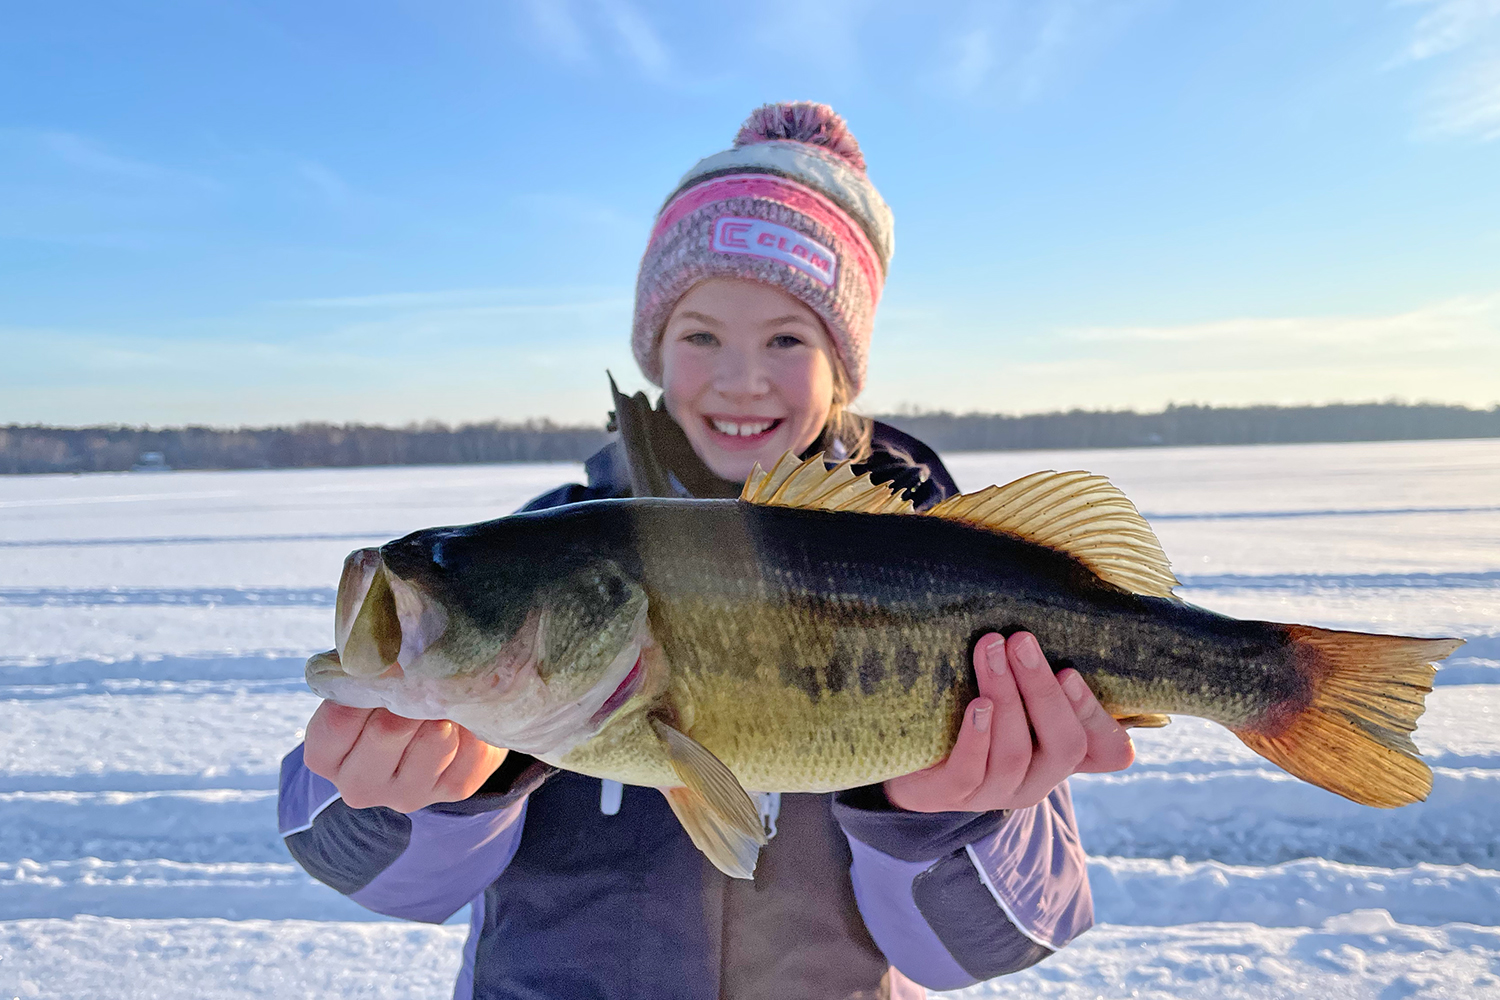 With a little planning, numbers of largemouth bass can be caught through the ice.